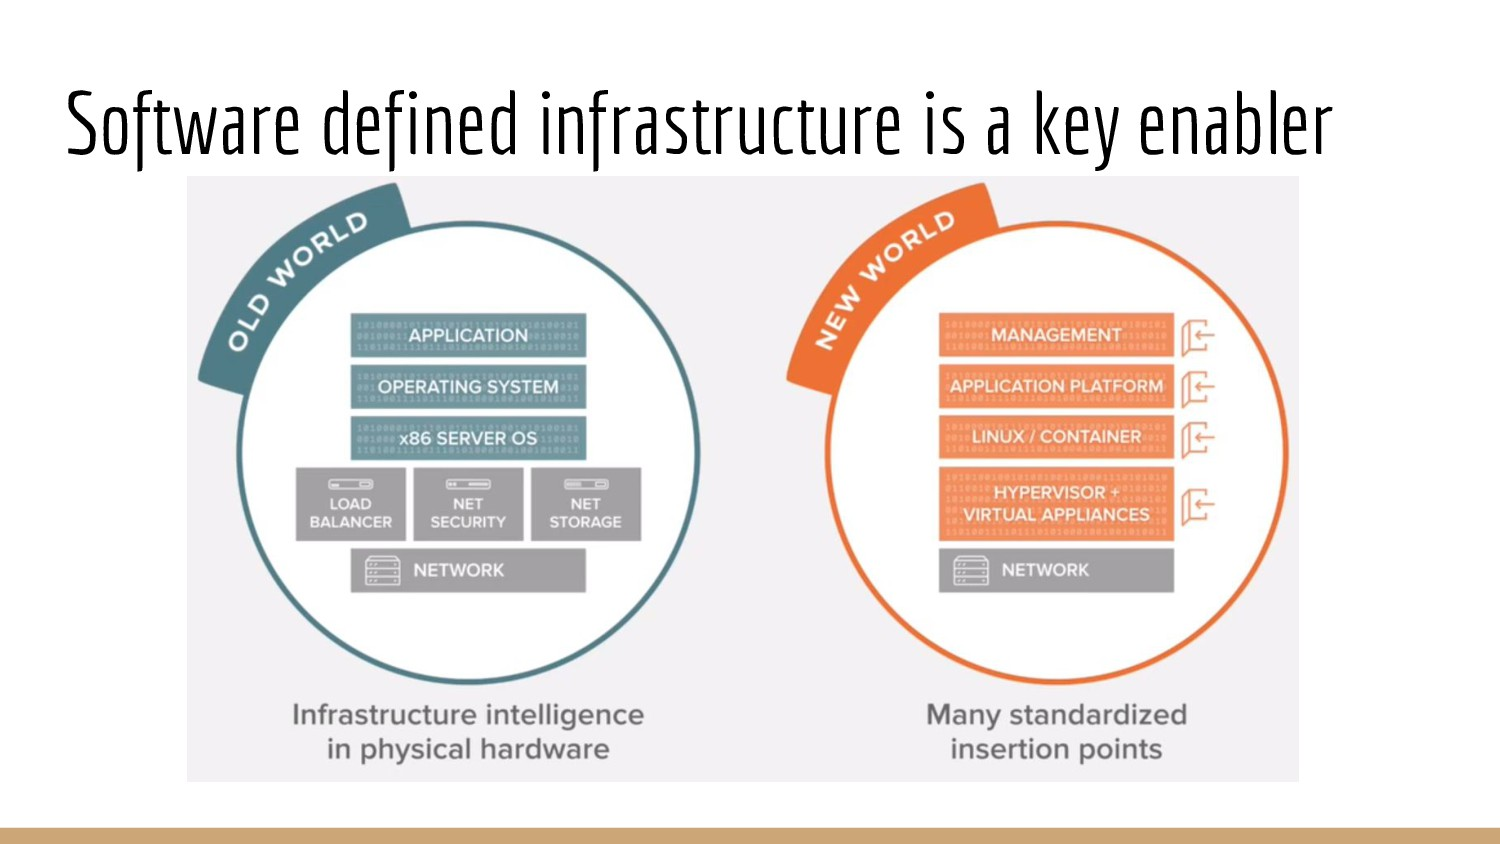 Software defined infrastructure is a key enabler